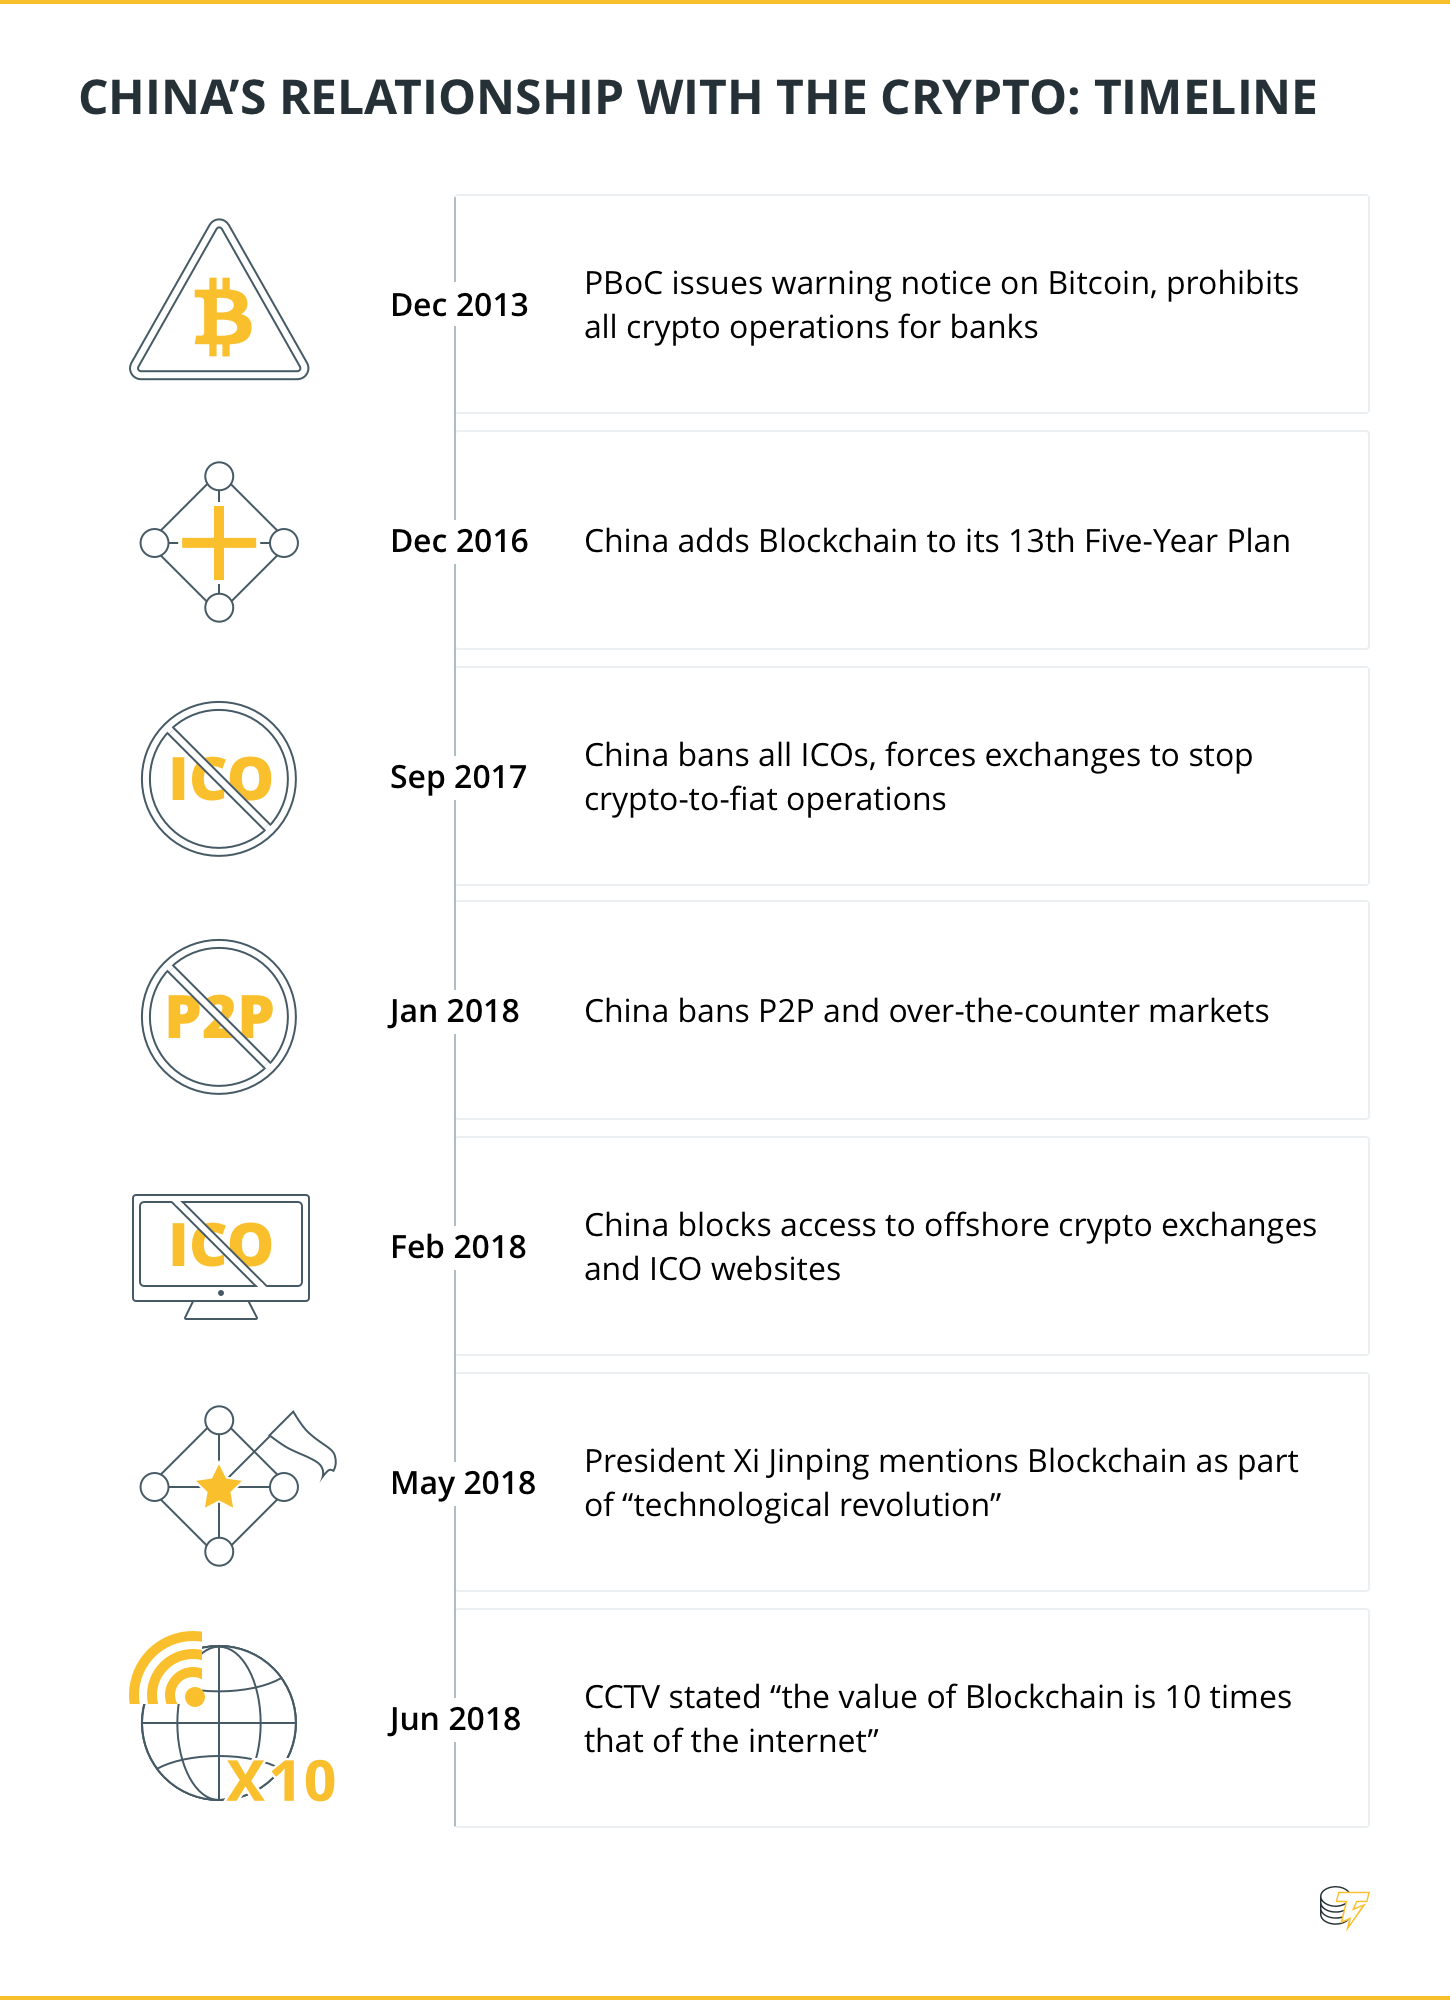 China's relationship with the crypto: timeline